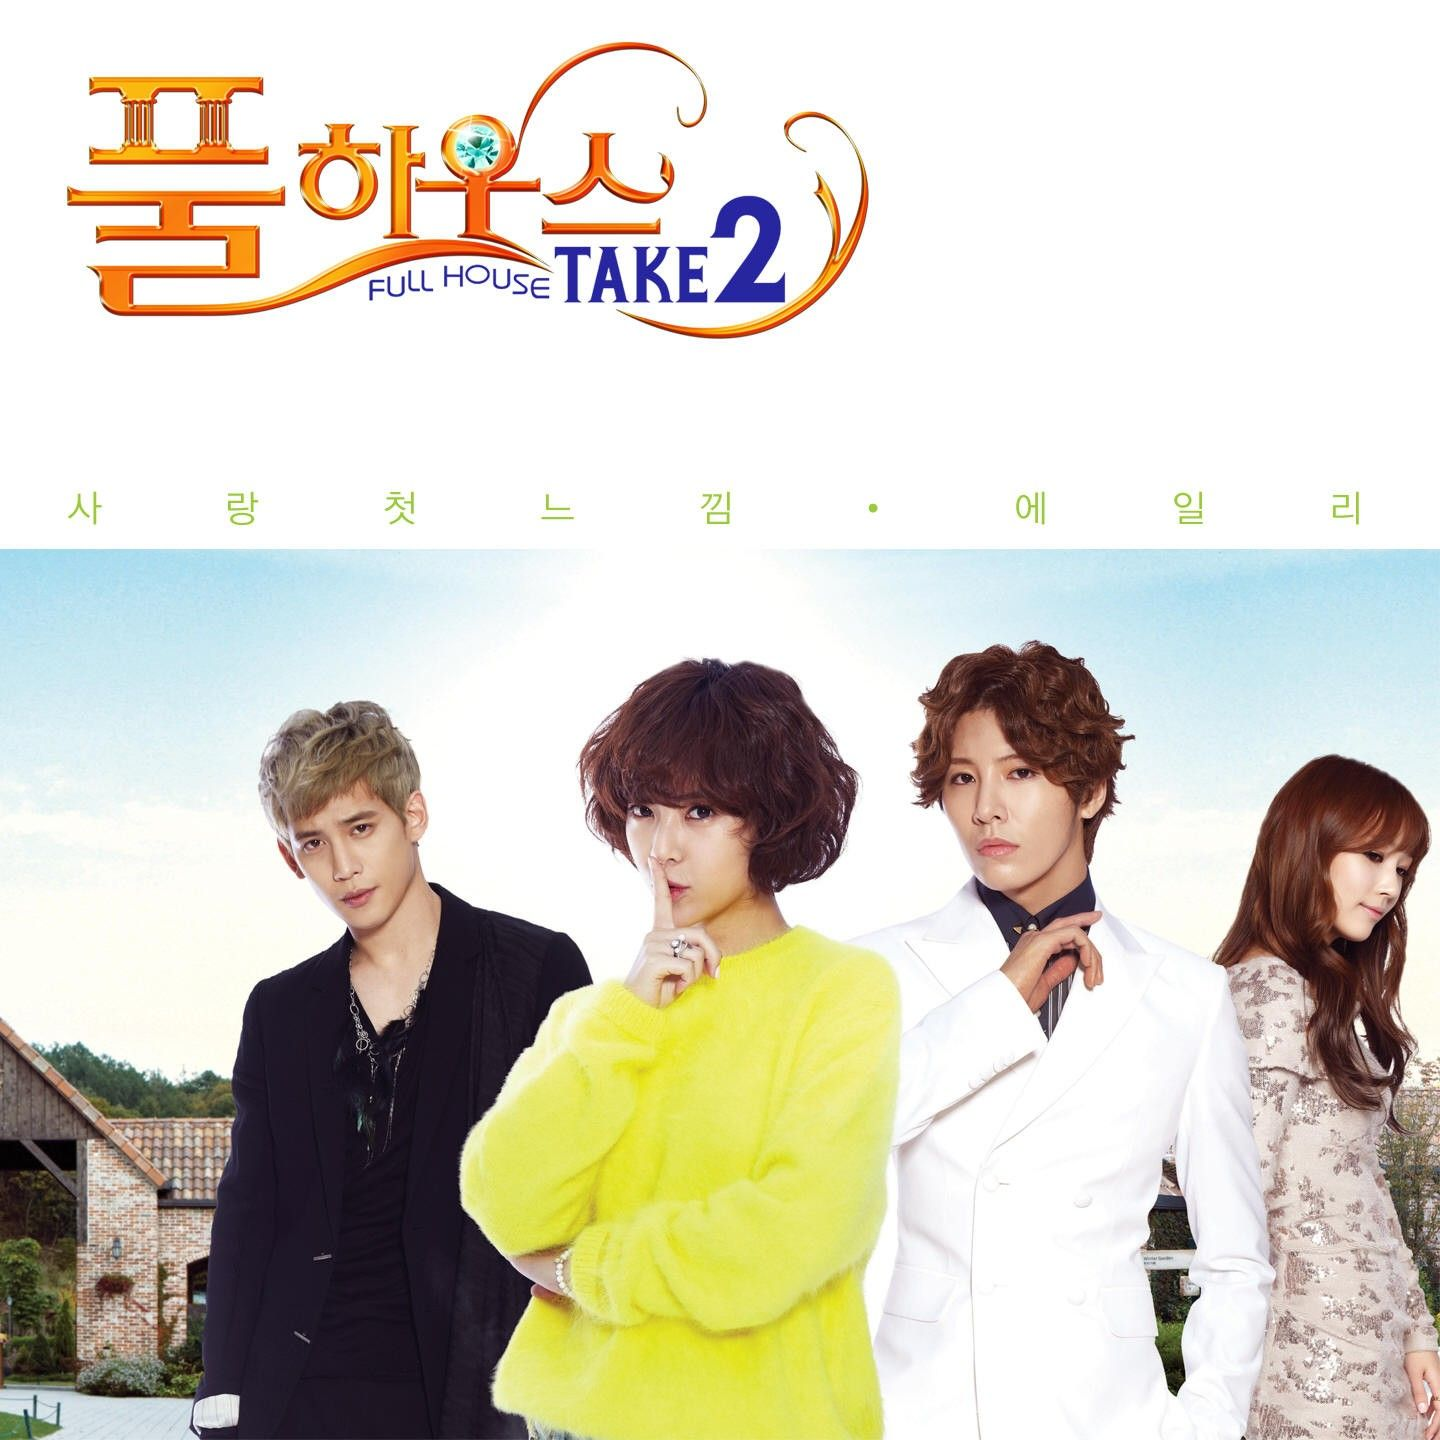 Download Ailee - Love Note (OST Full House Take 2 Part.1) Mp3